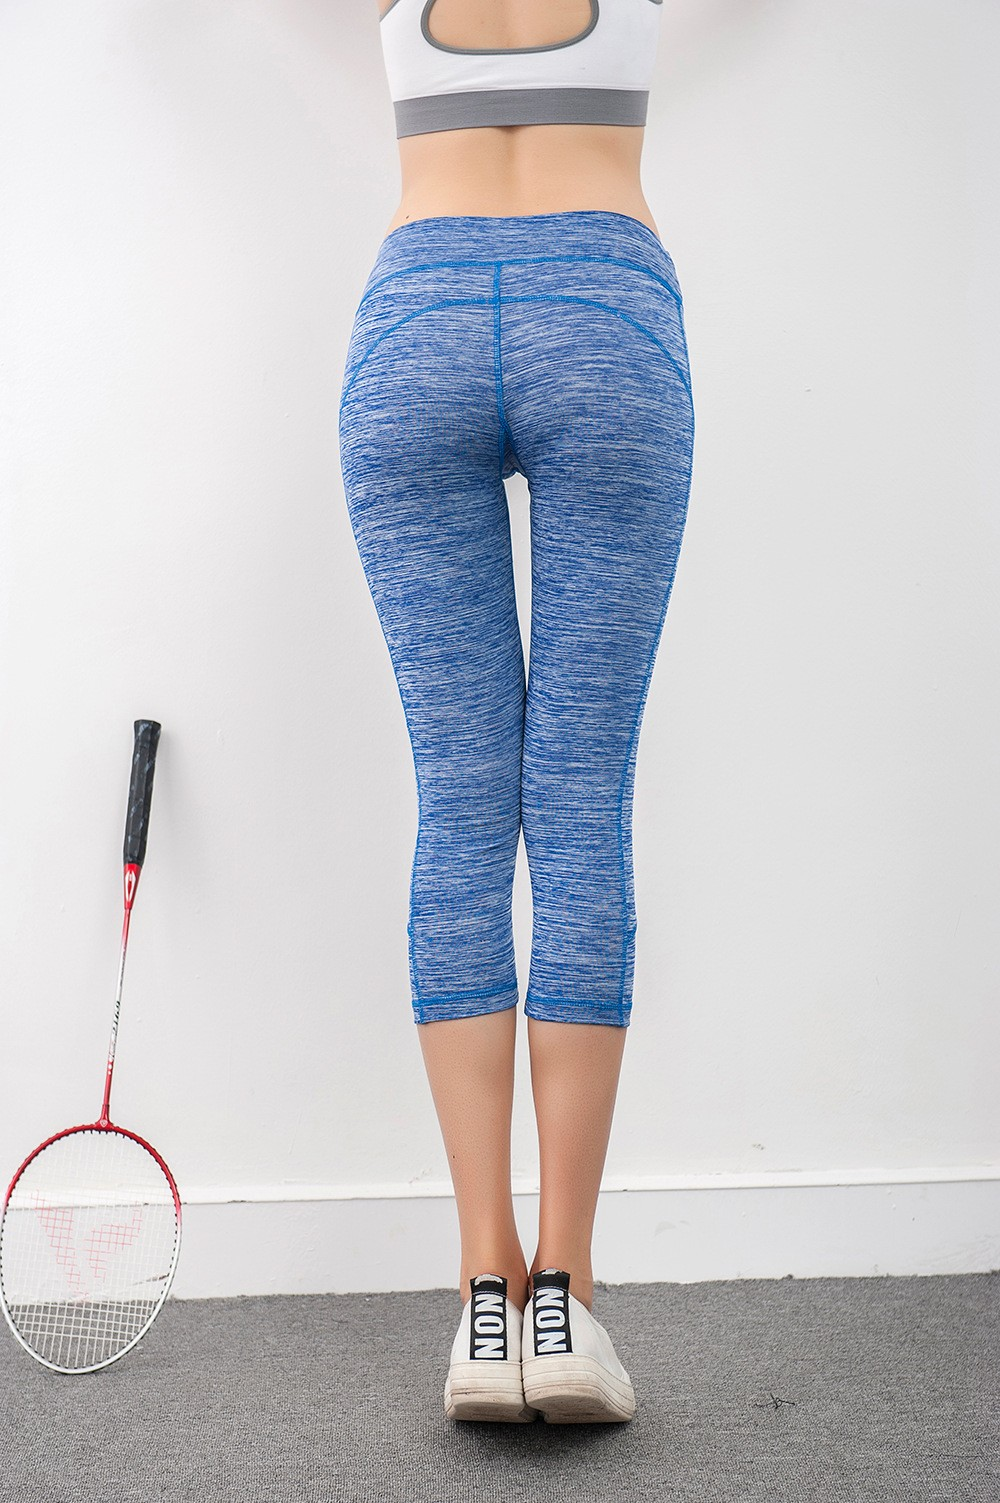 Hot Sale Yoga Leggings, Women Sexy Workout Pants,Gym Sports Fitness yoga Tights Leggings